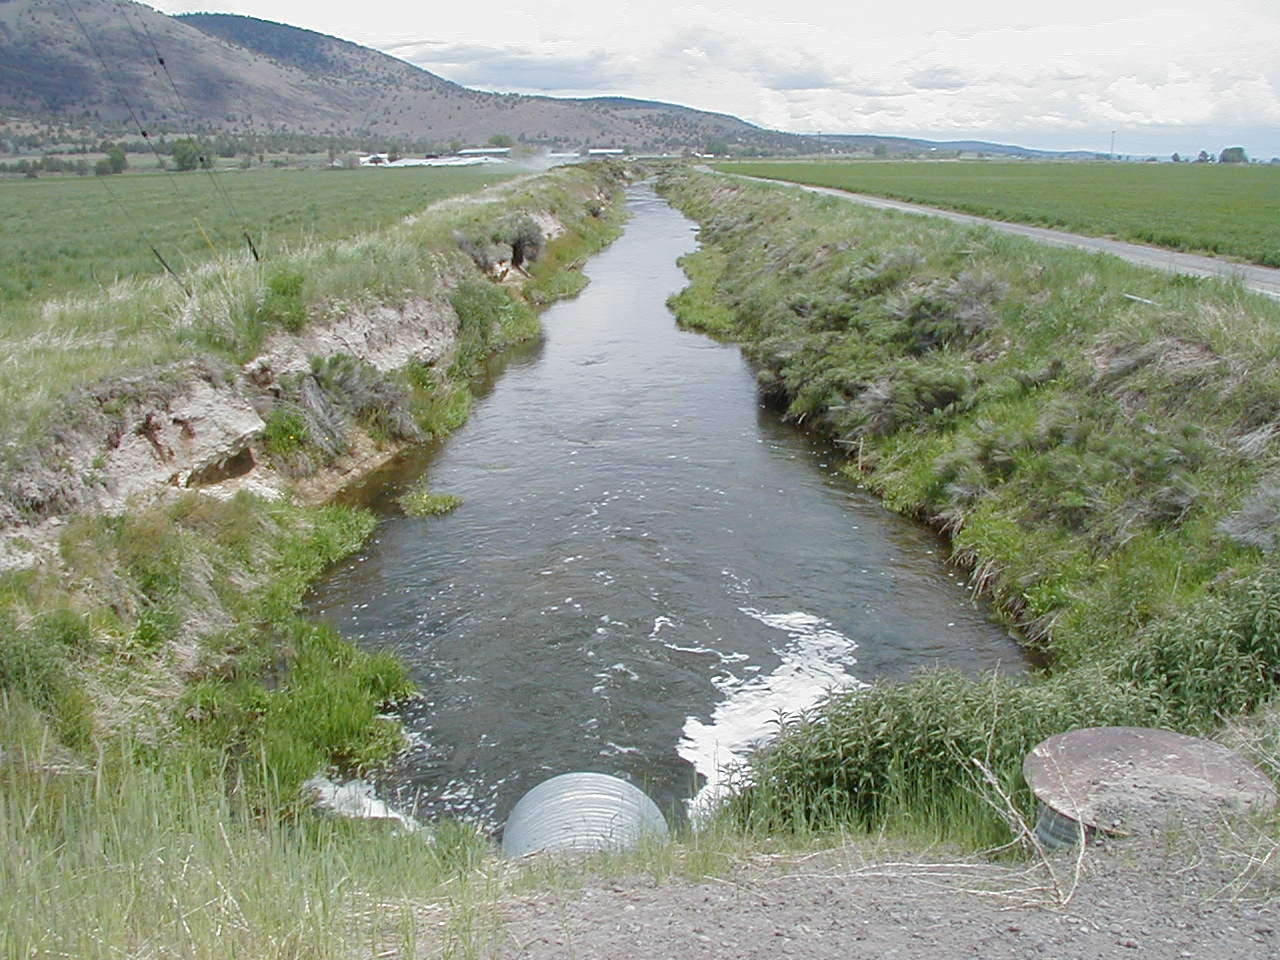 Irrigation Canal In The Lost River Basin Photo